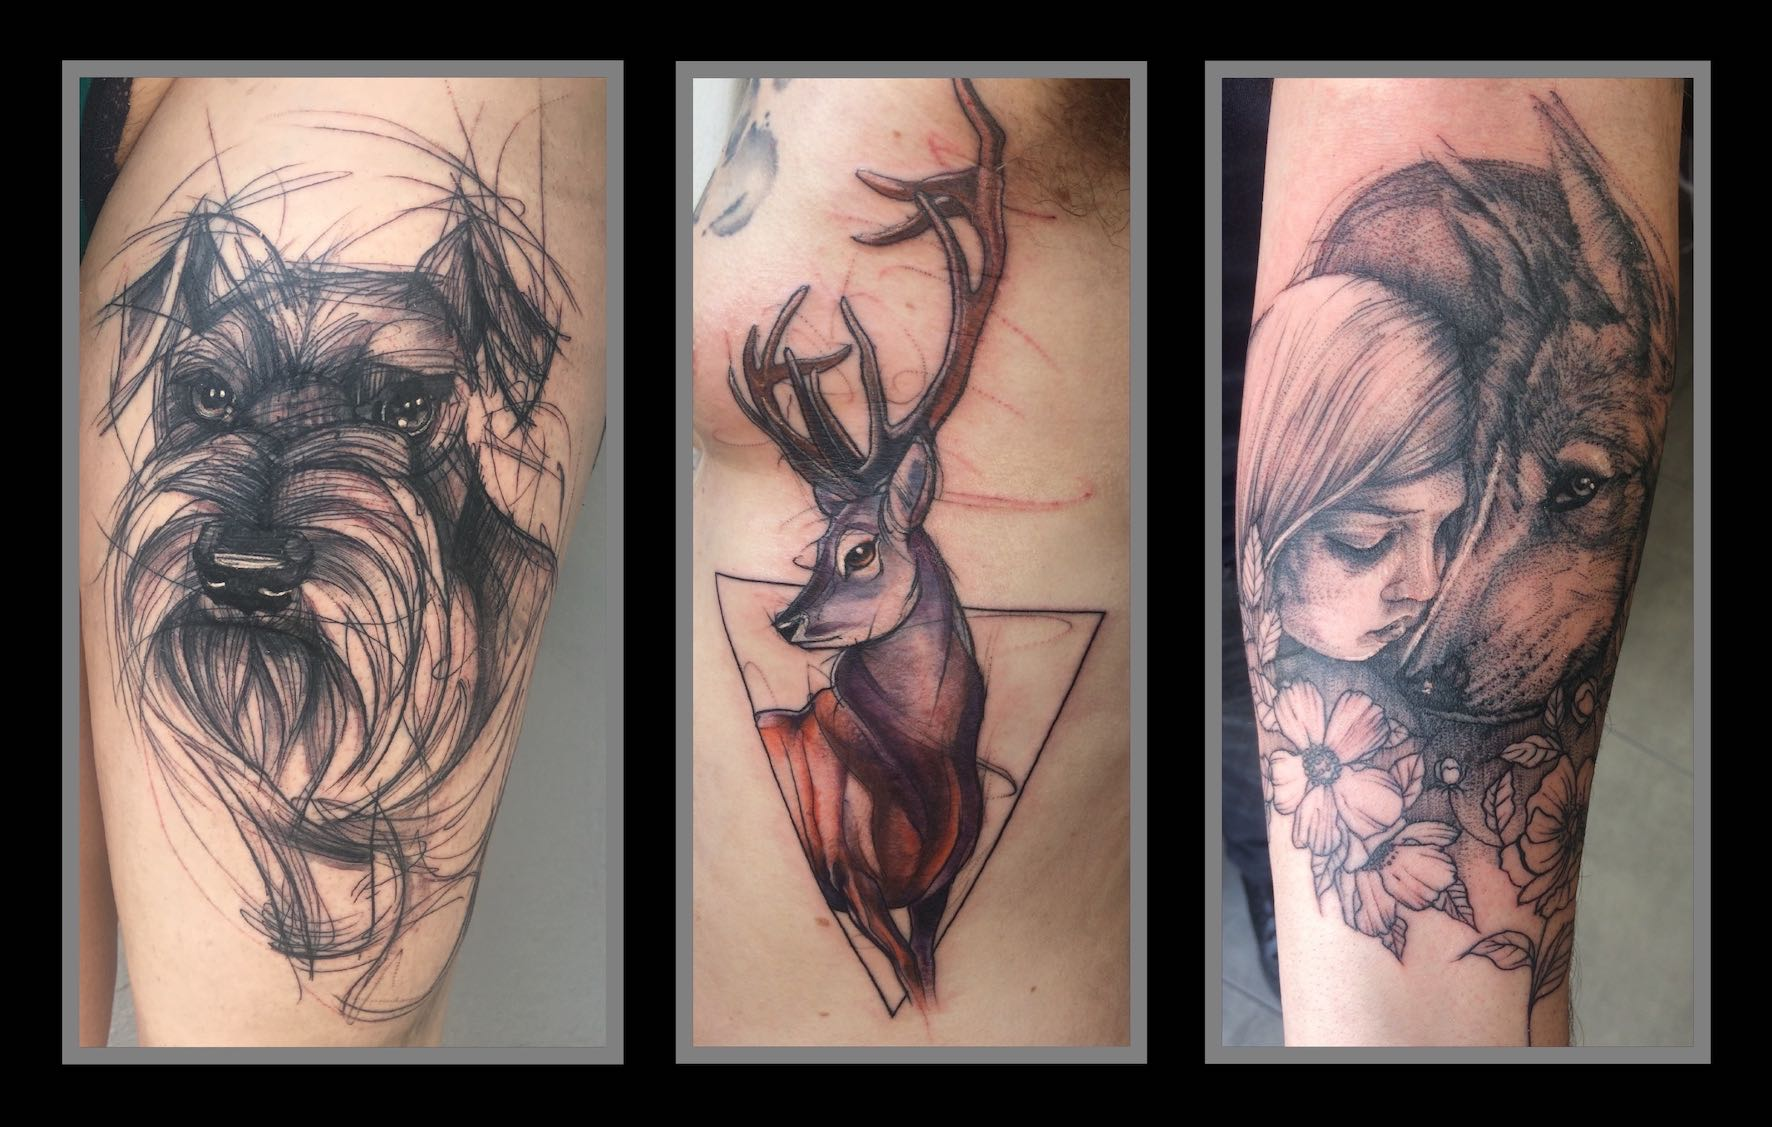 Illustrative tattoos done by Lauren Peachfish